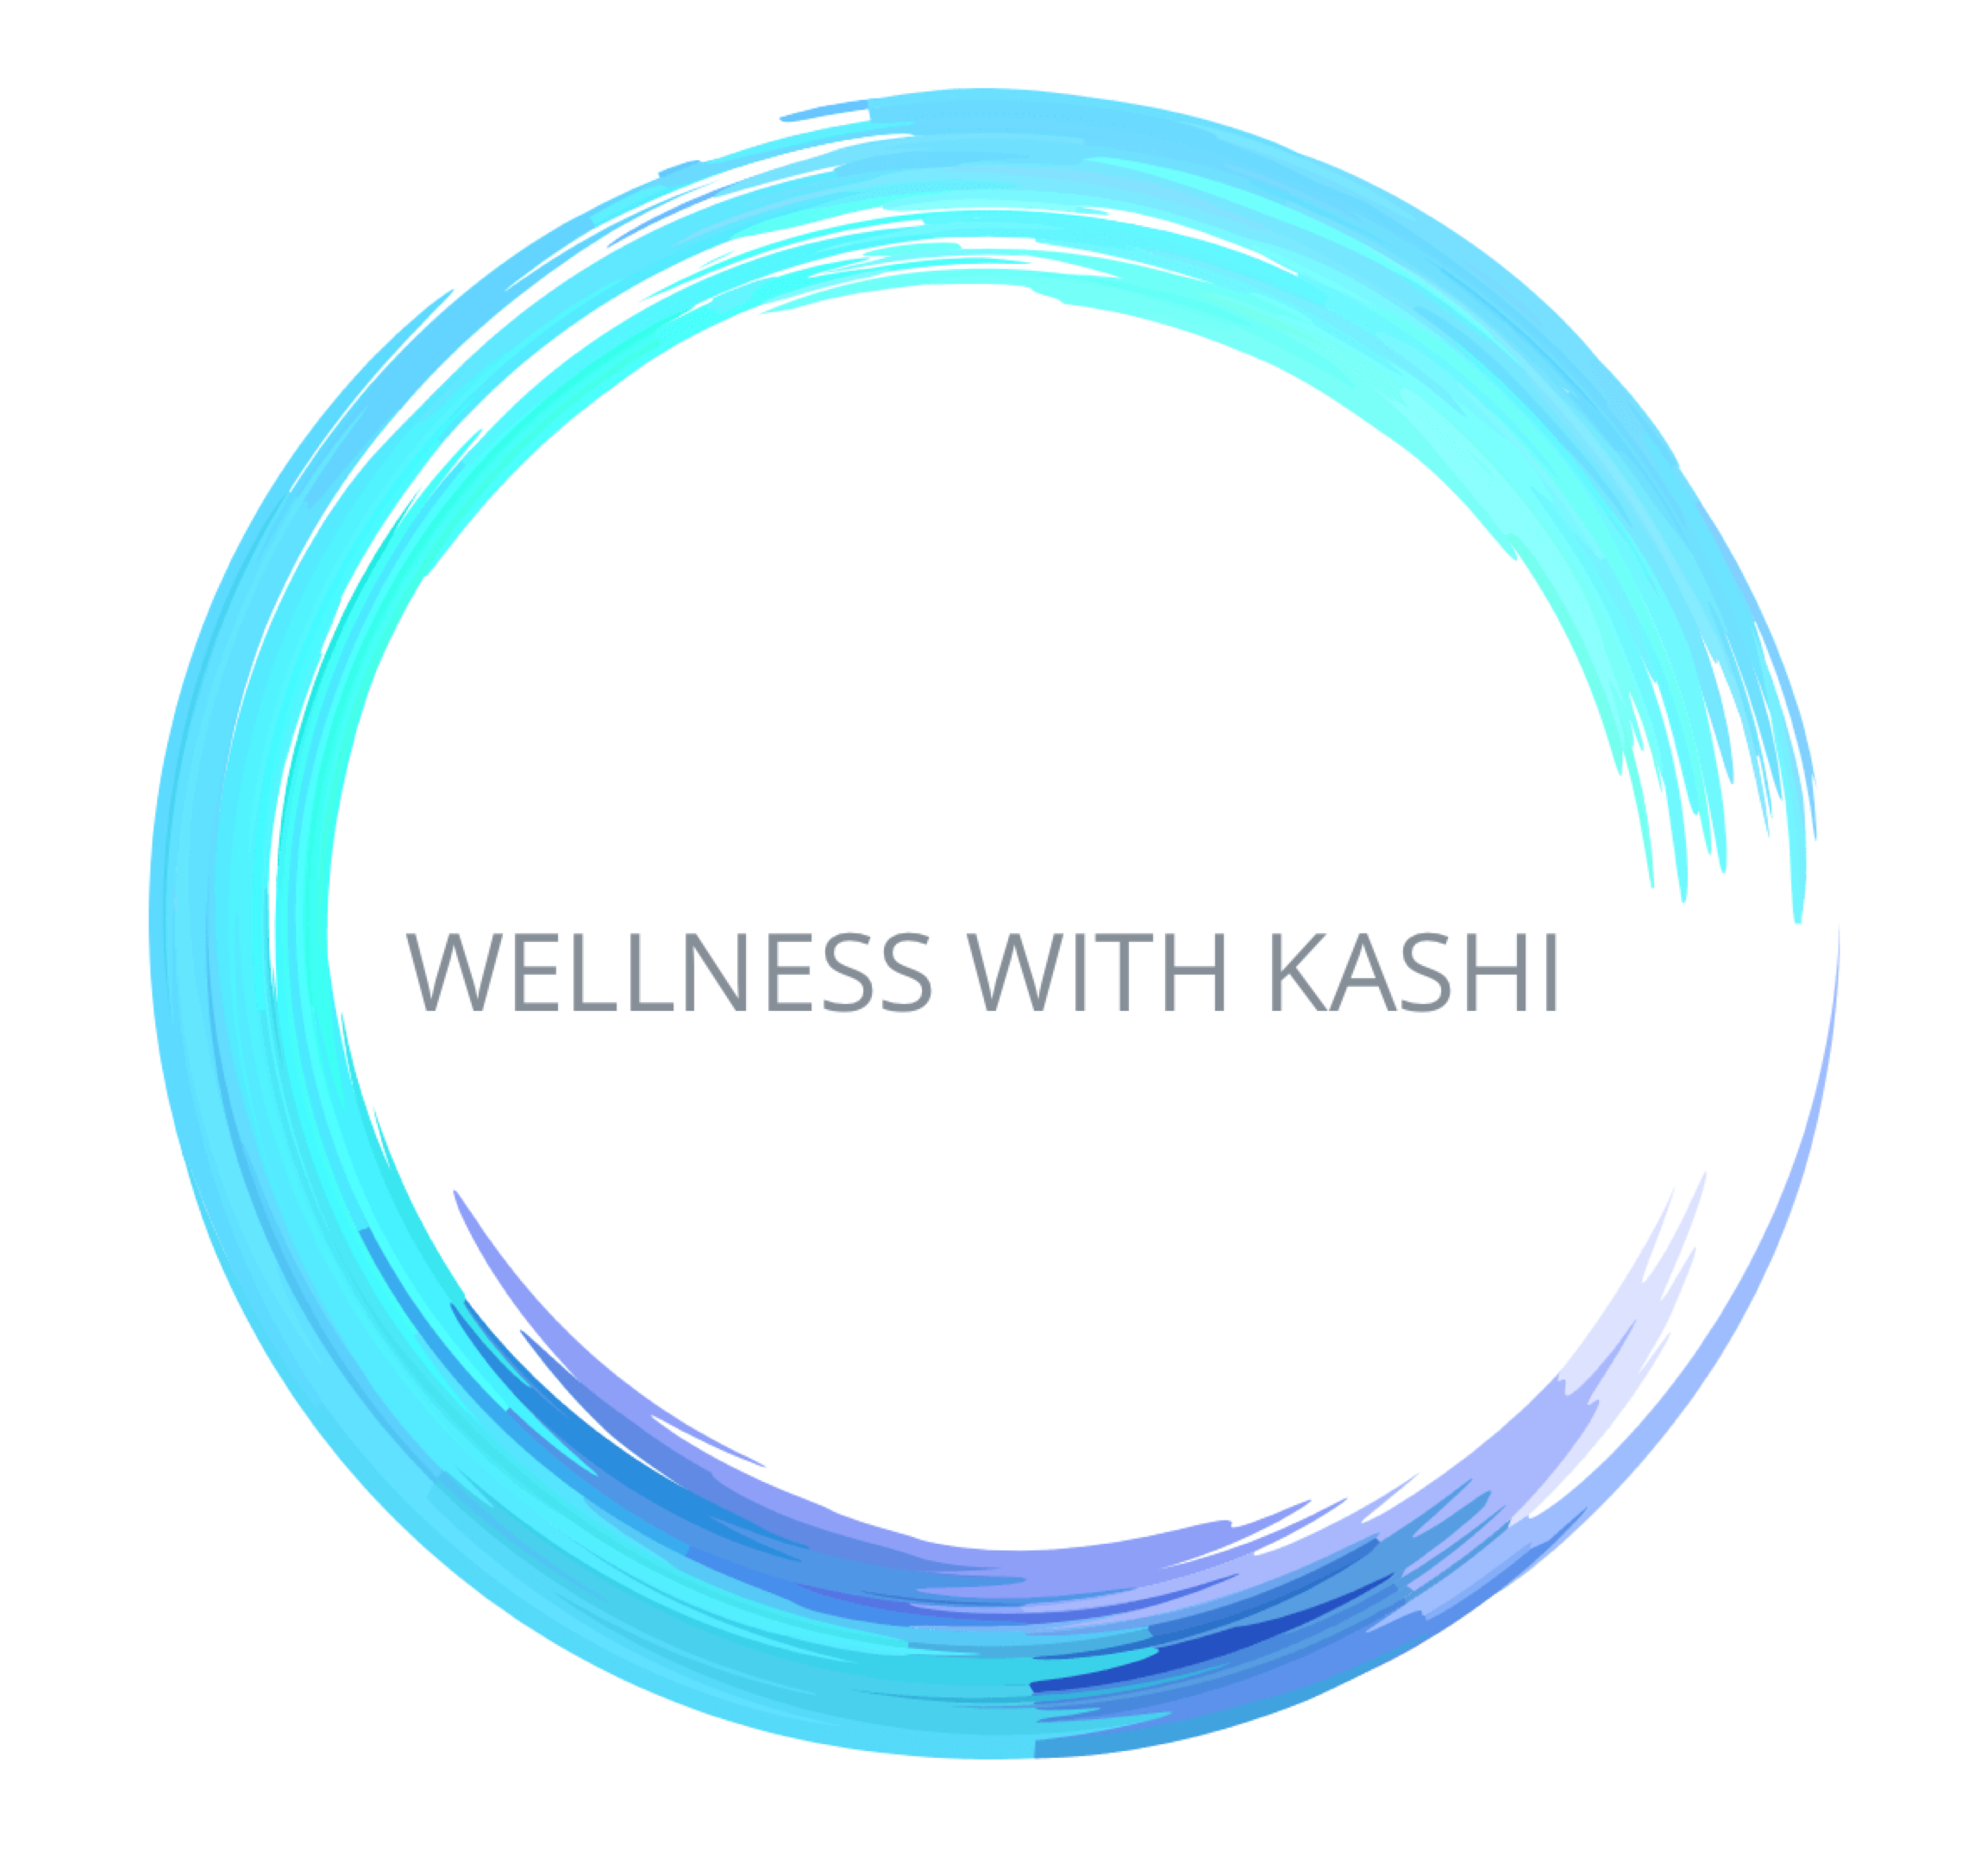 Wellness With Kashi